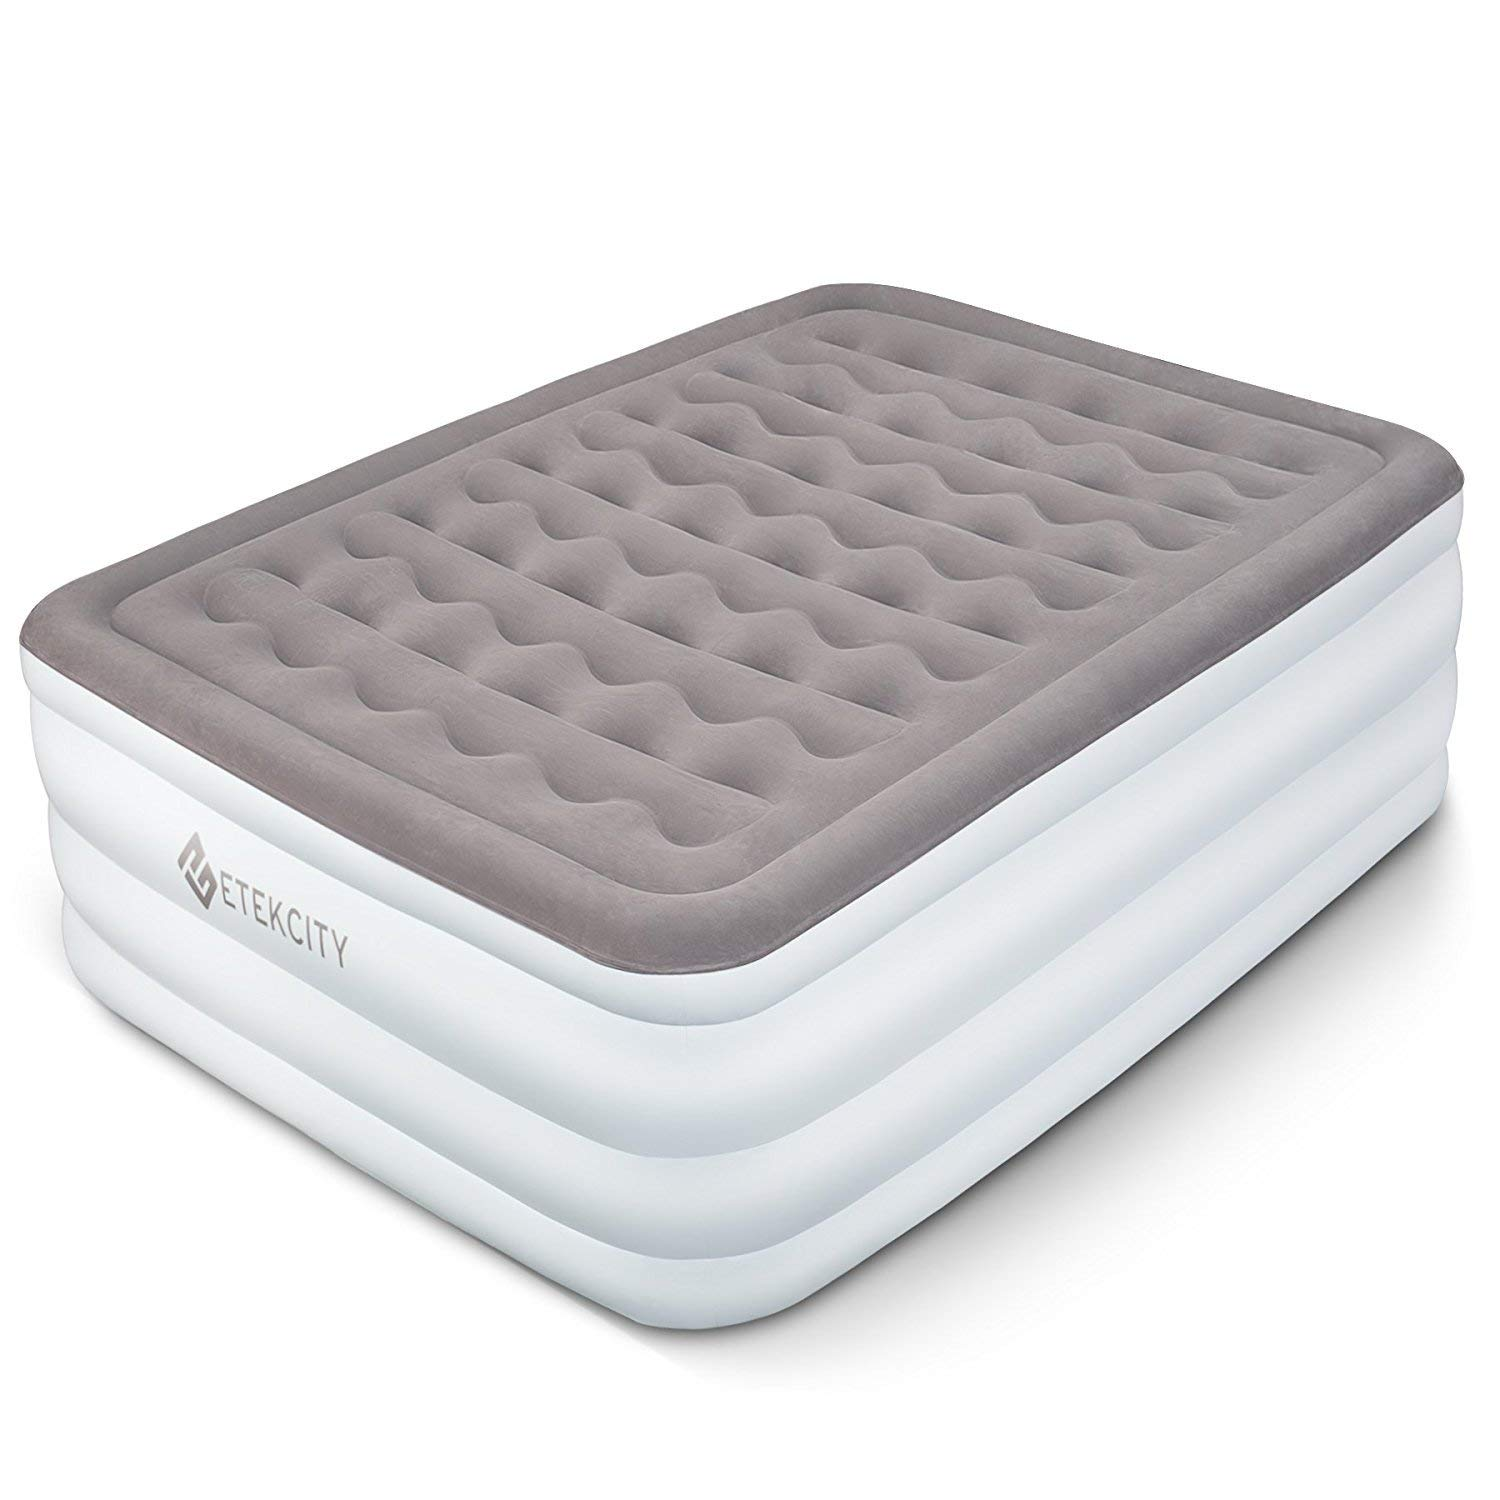 Etekcity Upgraded Air Mattress